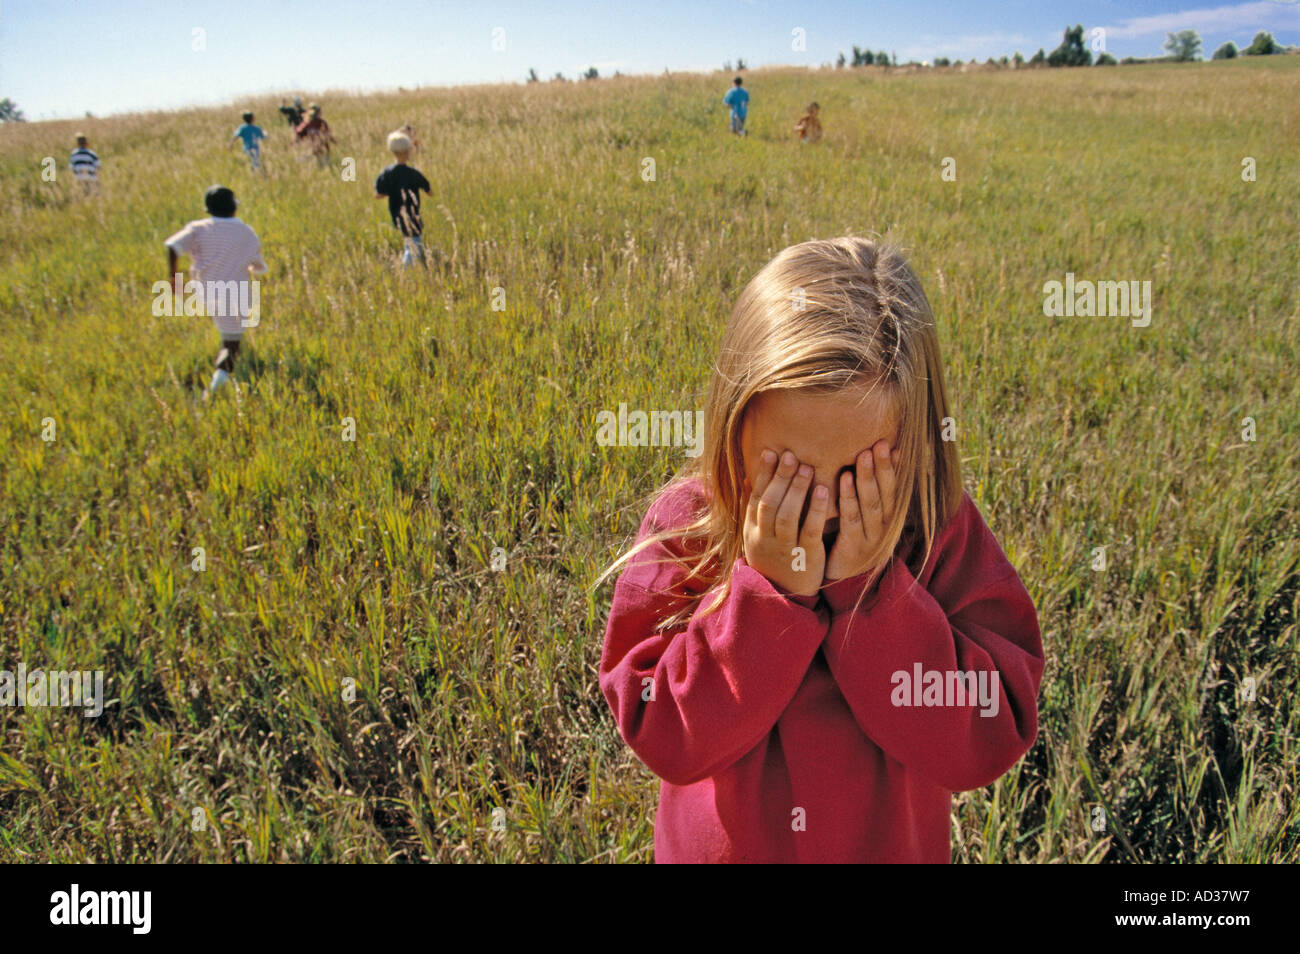 Blond haired girl playing hide and seek with other children in sunlit field. - Stock Image